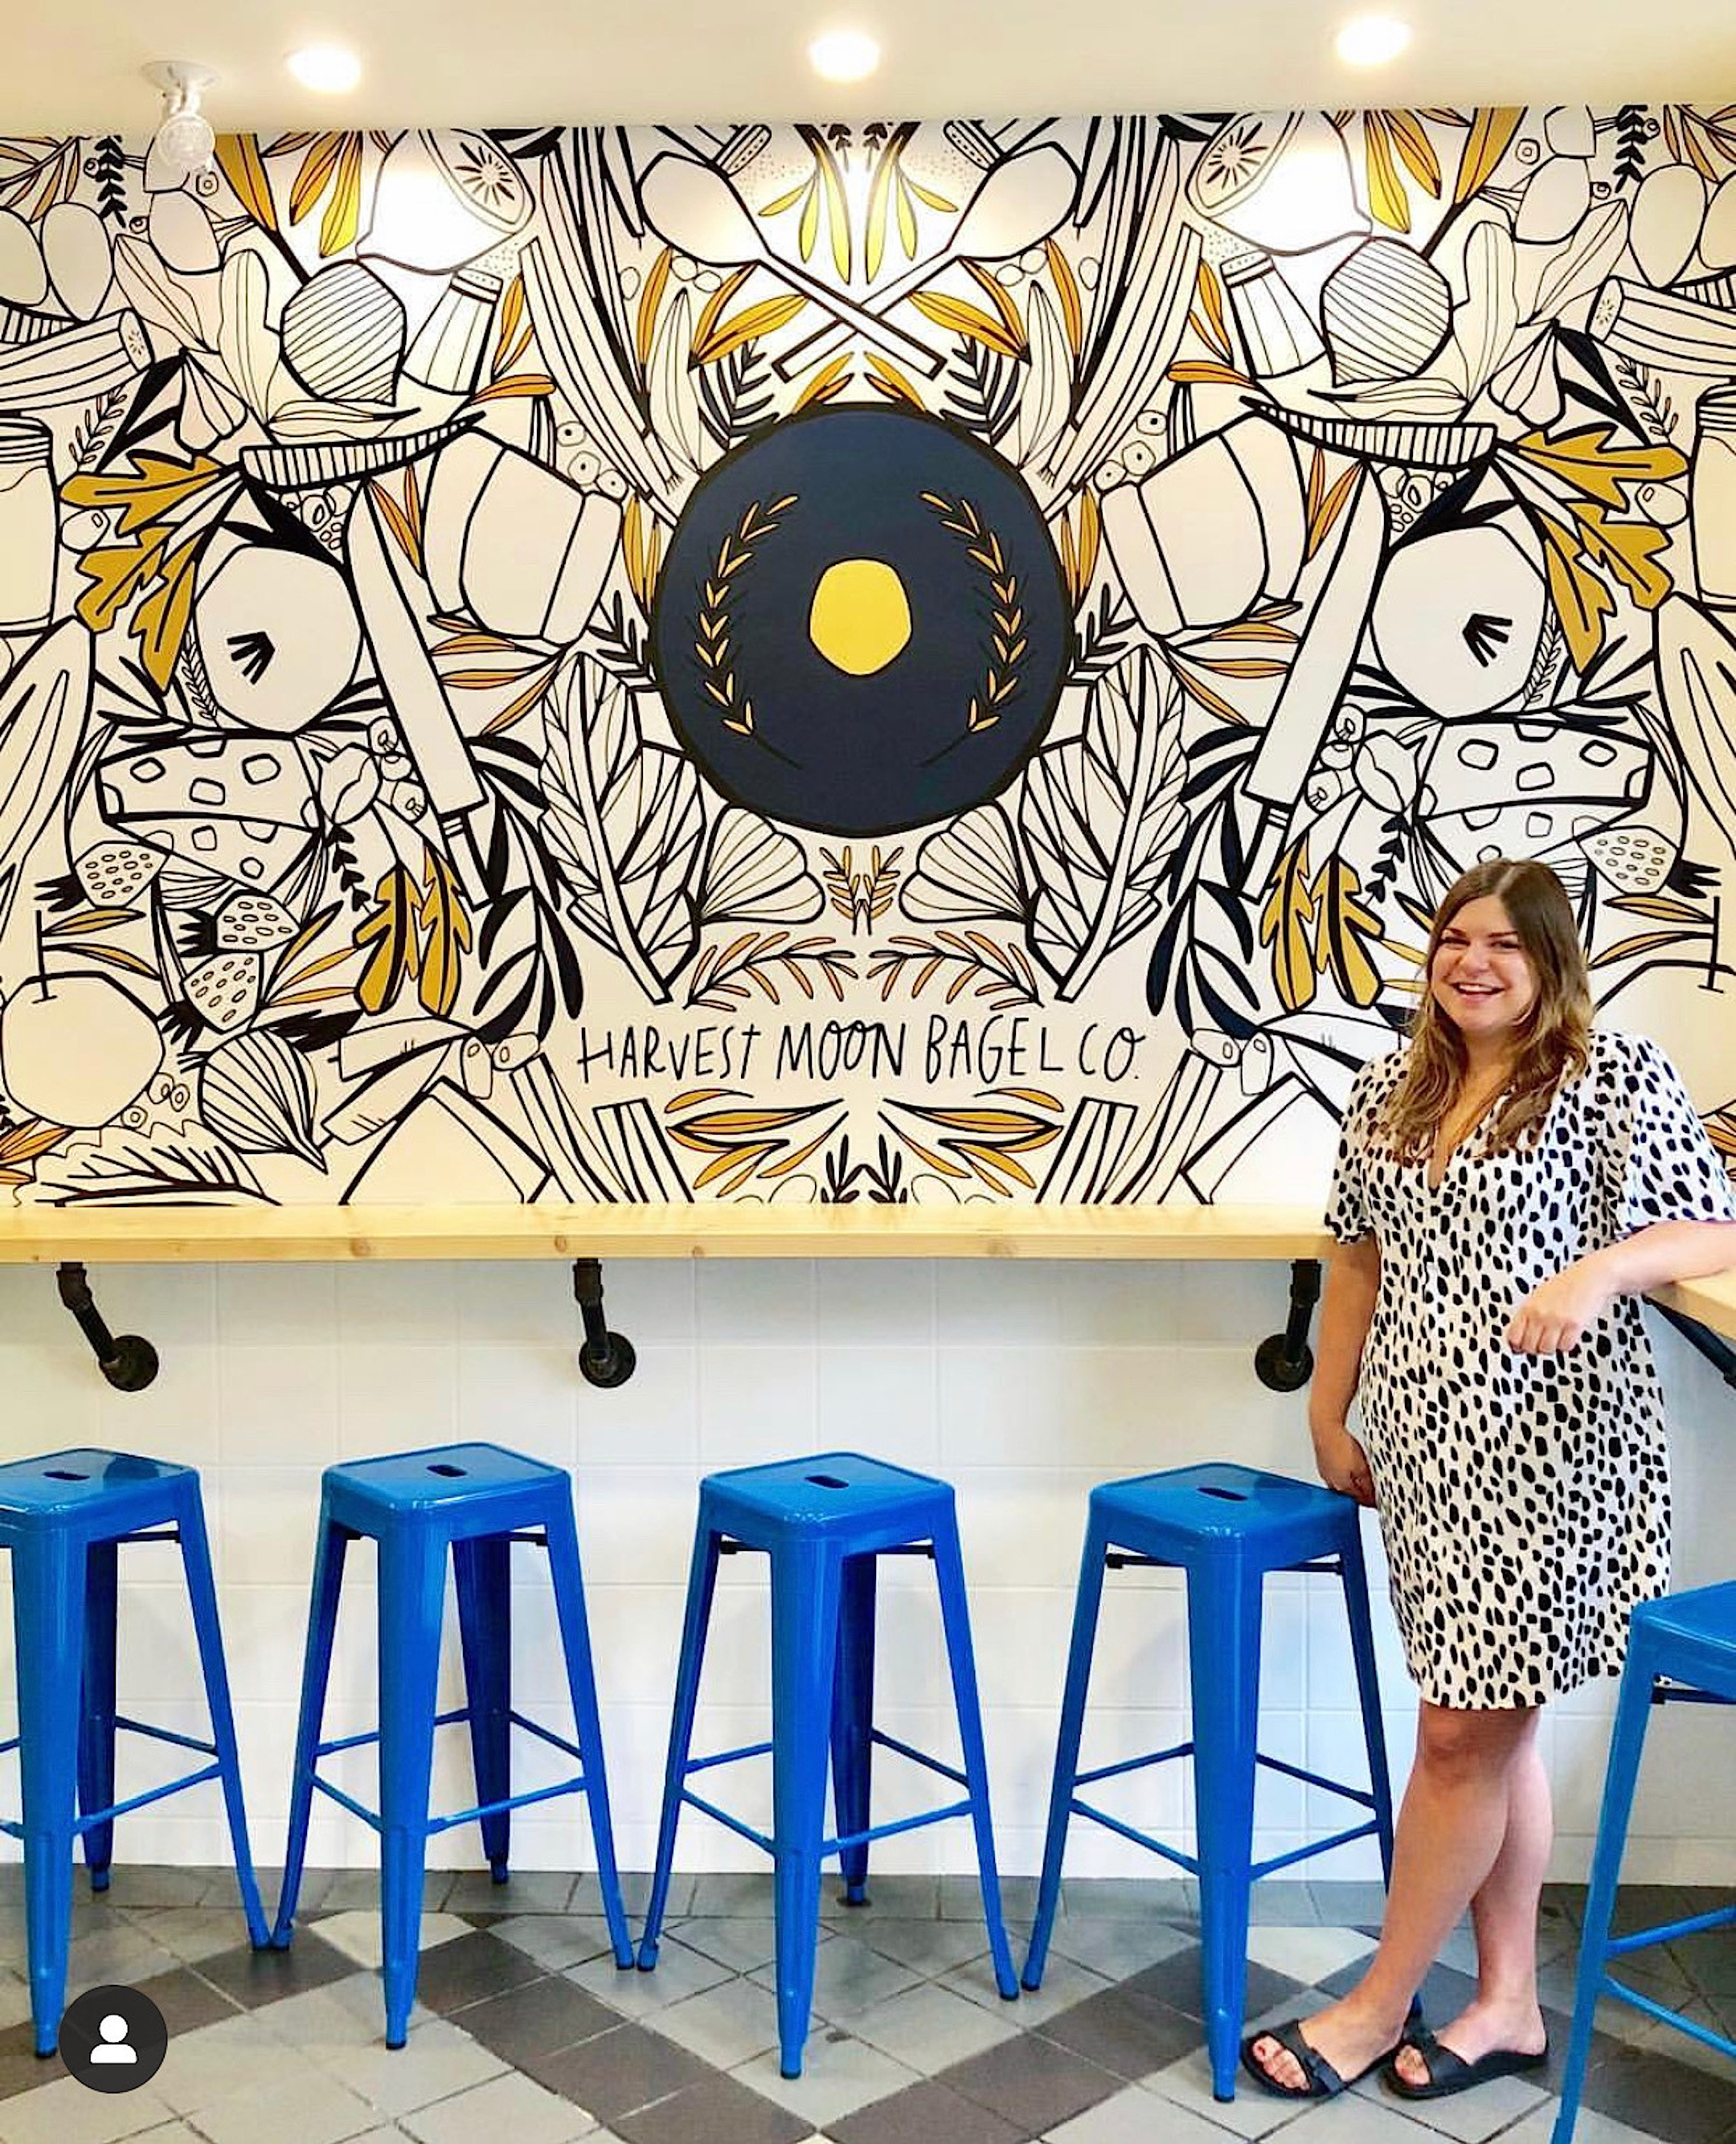 Removable Wallpaper Decals Add Personality Without Permanence Food Living Lancasteronline Com